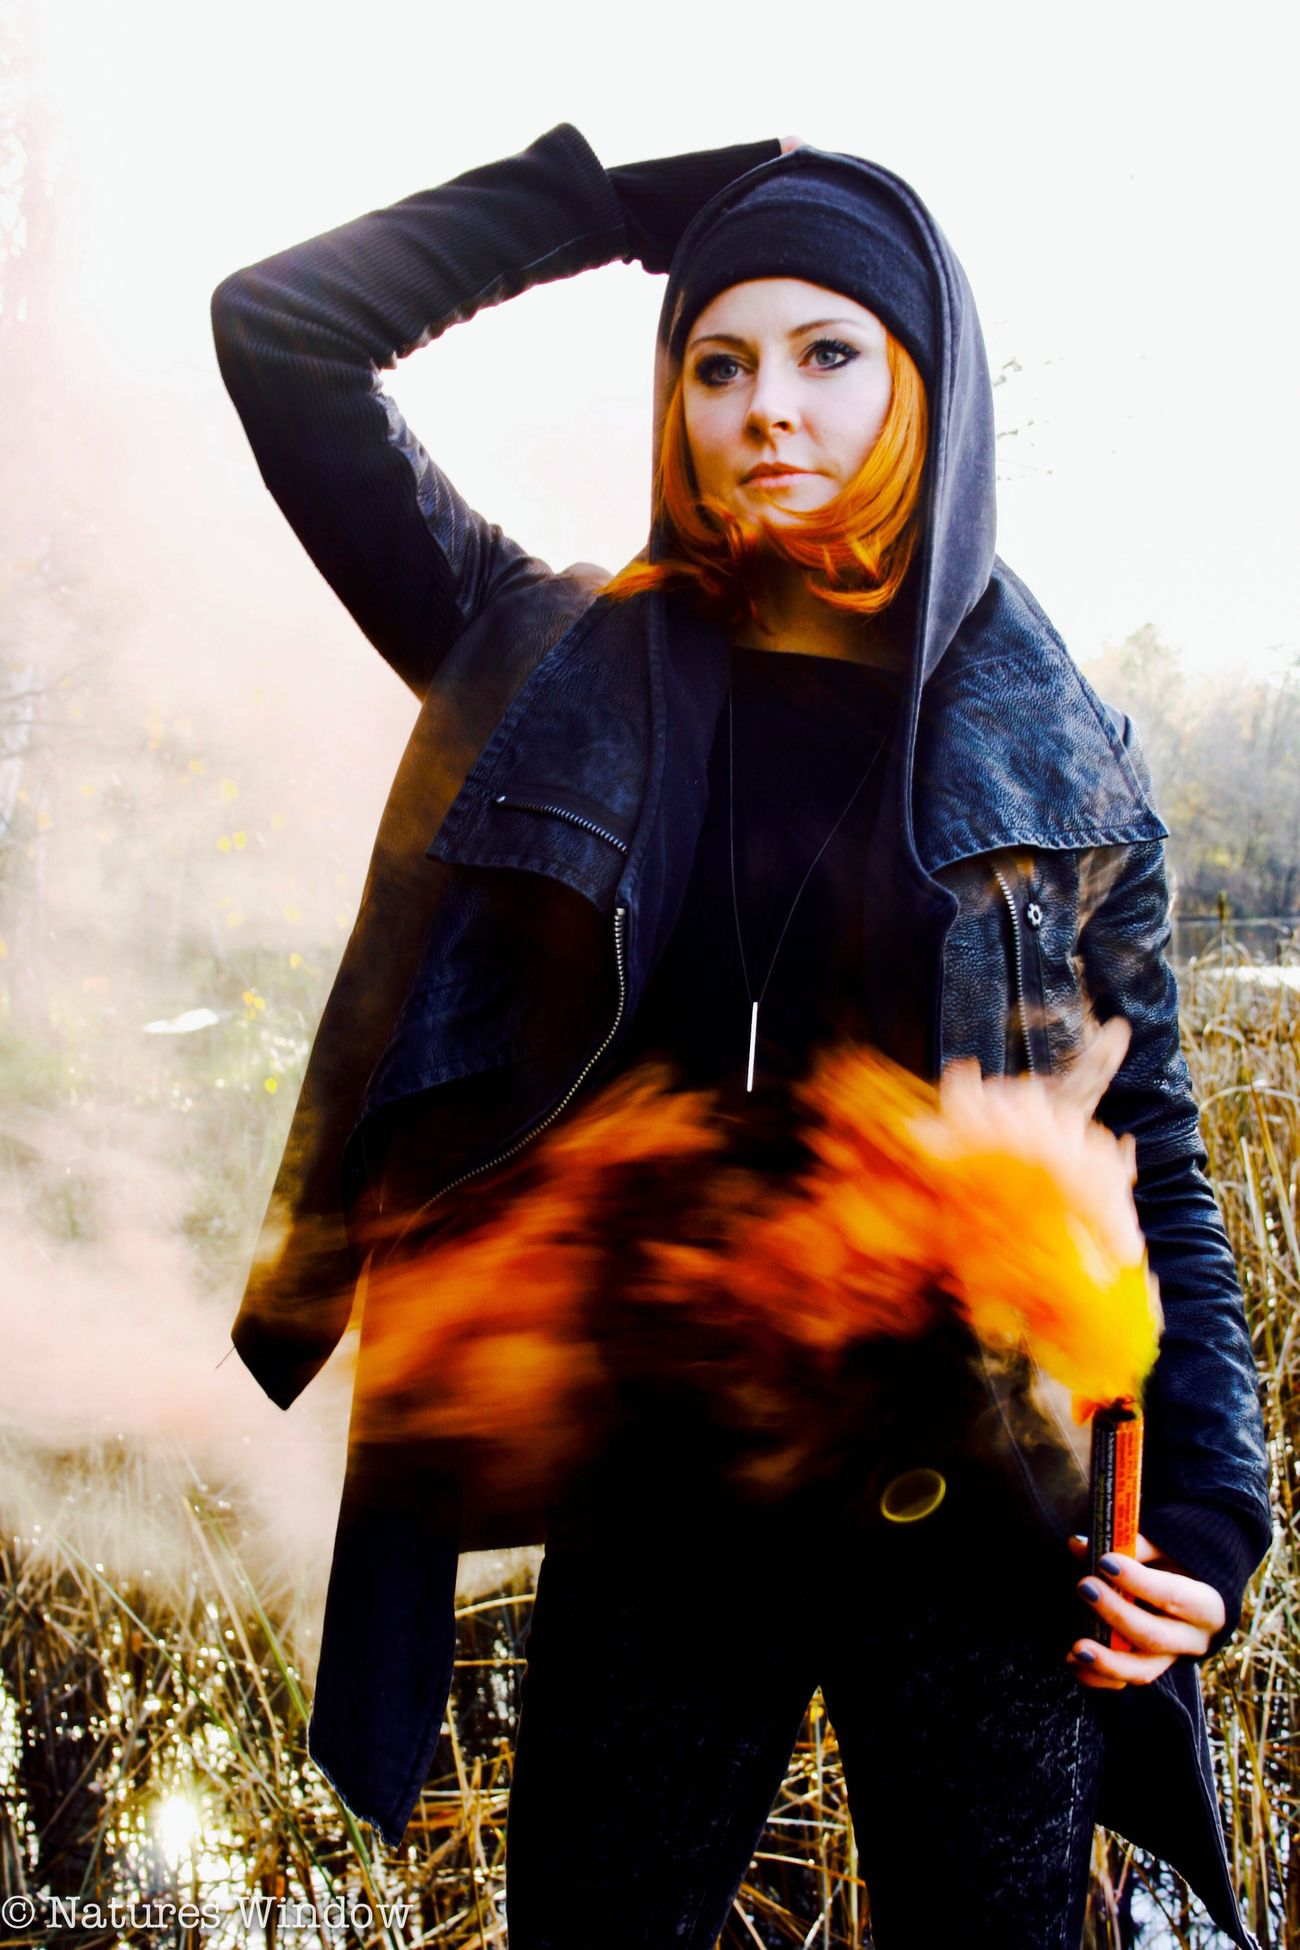 Smokebomb Young Women Real People One Person Standing Portrait Nature Photography Pyrotechnics Nature